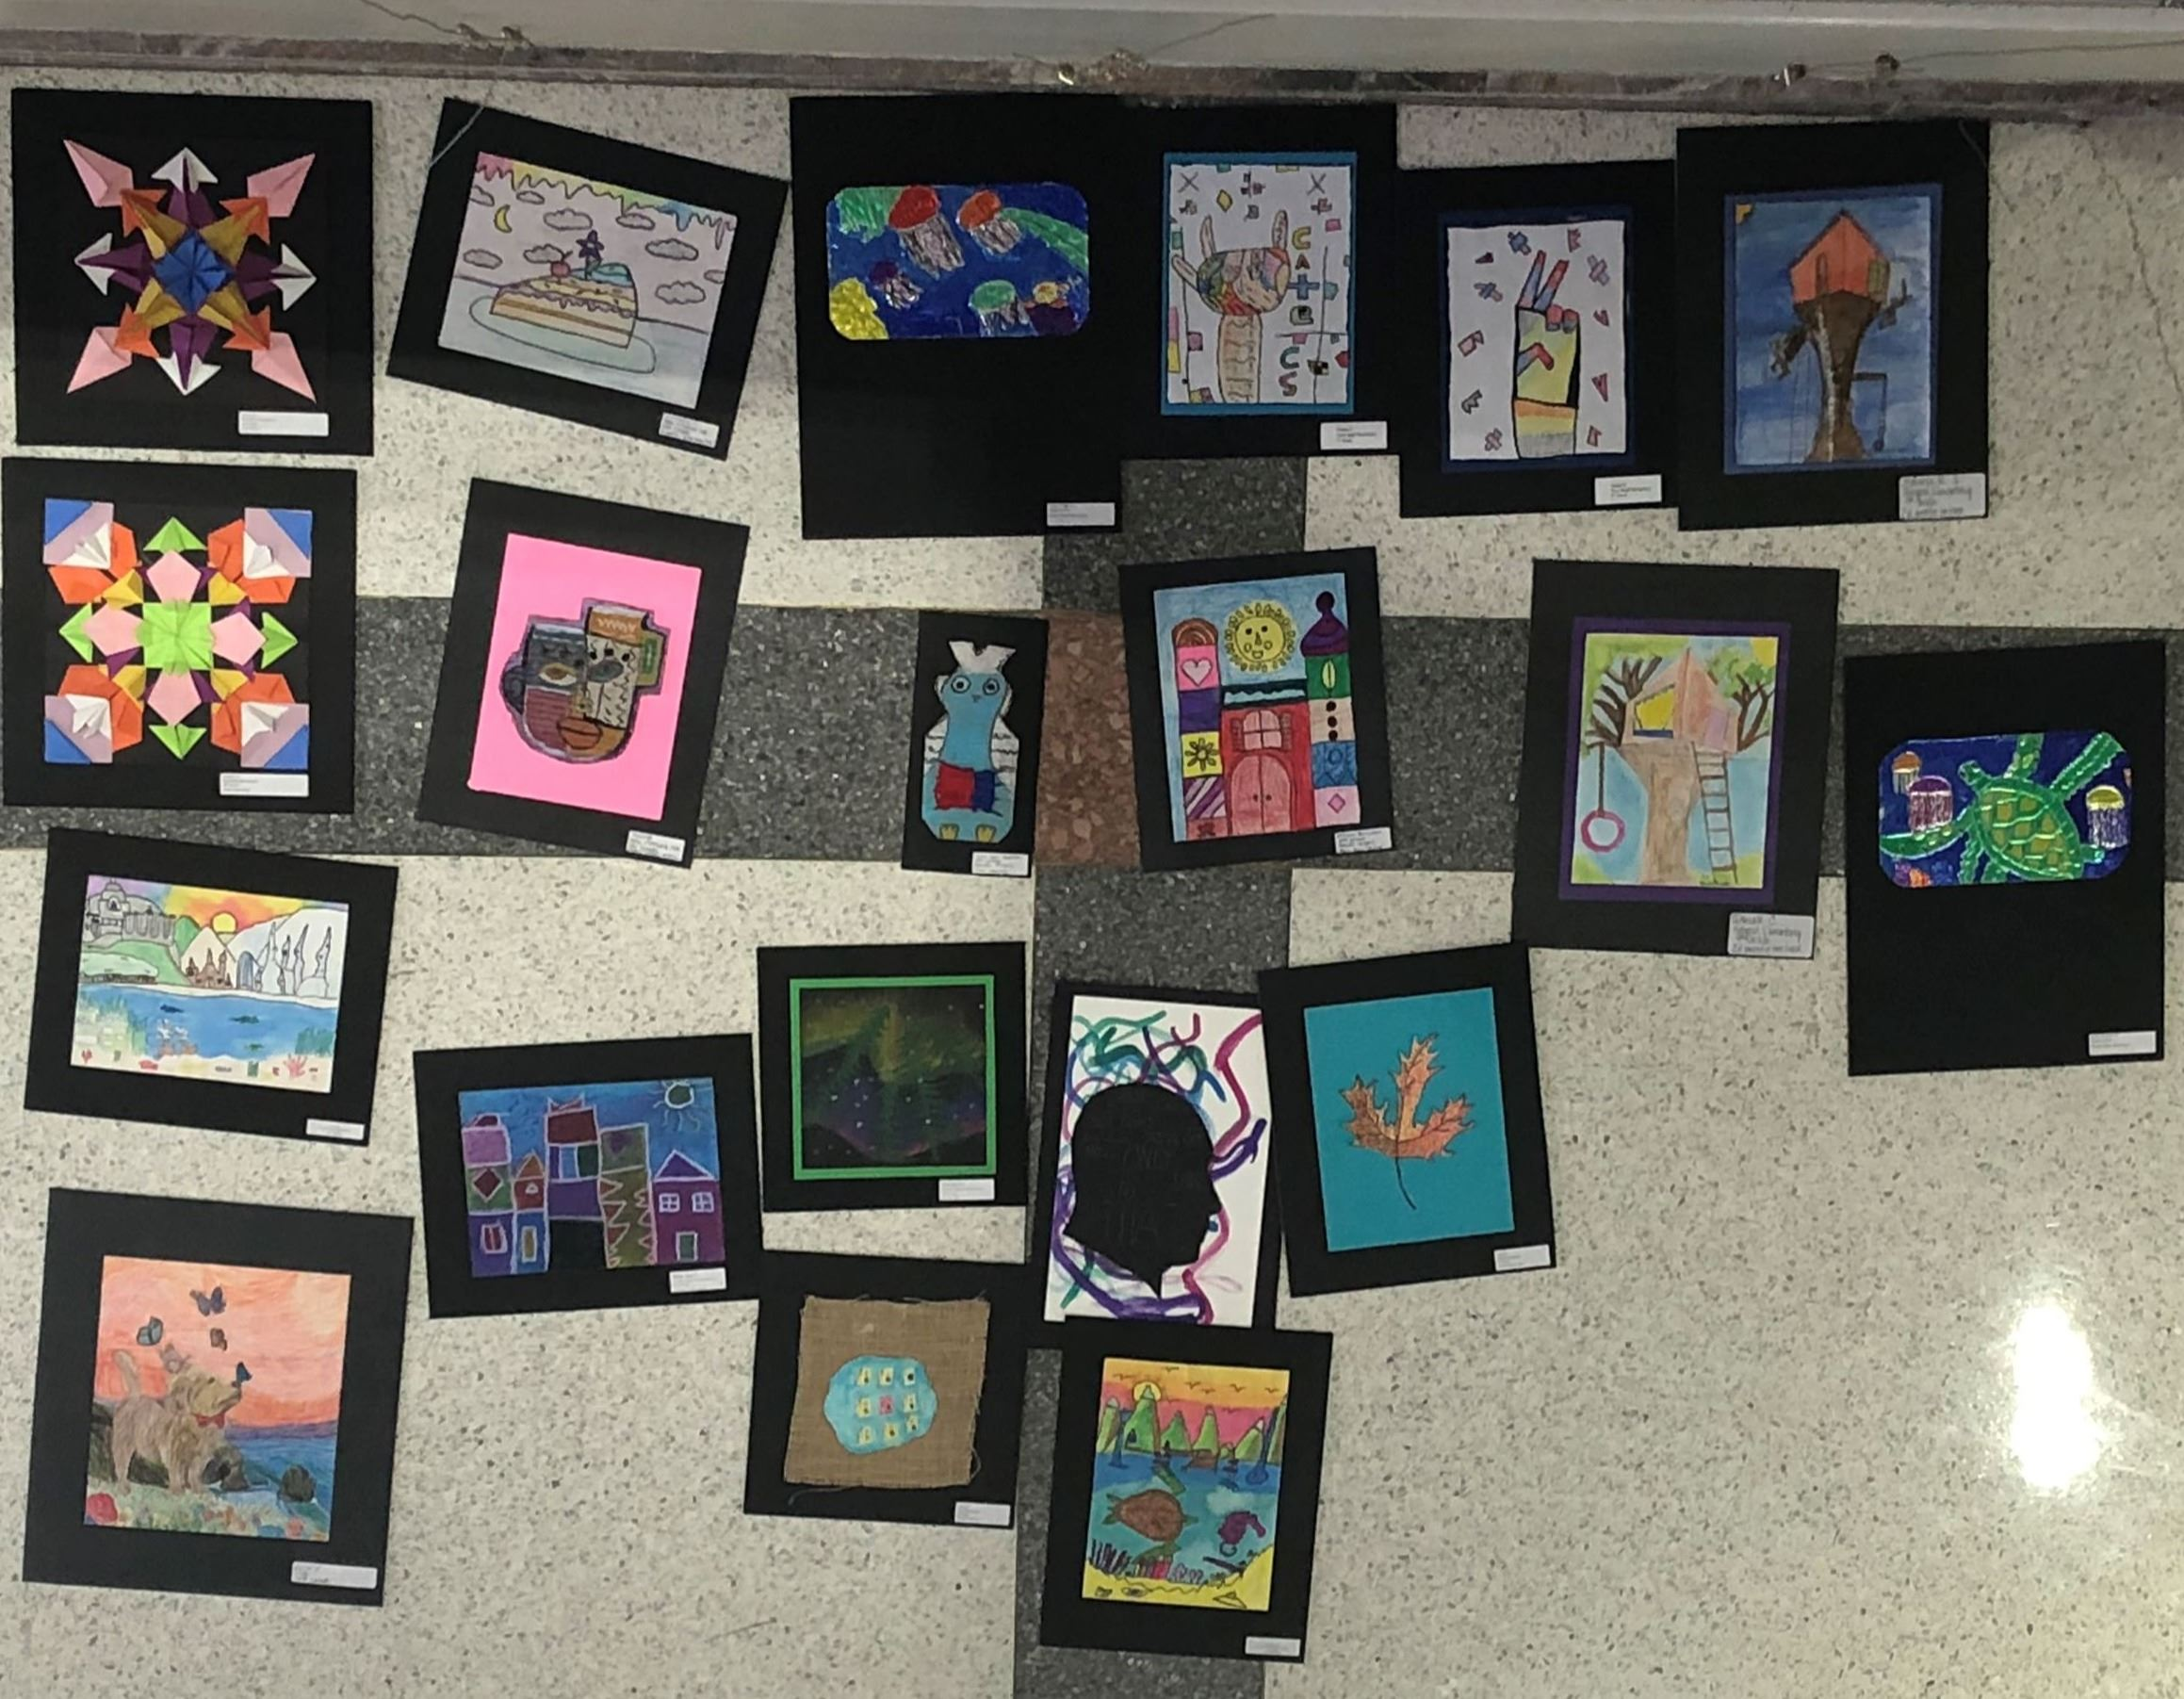 Pieces of art from Murfreesboro City Schools on ready for Rotunda installation